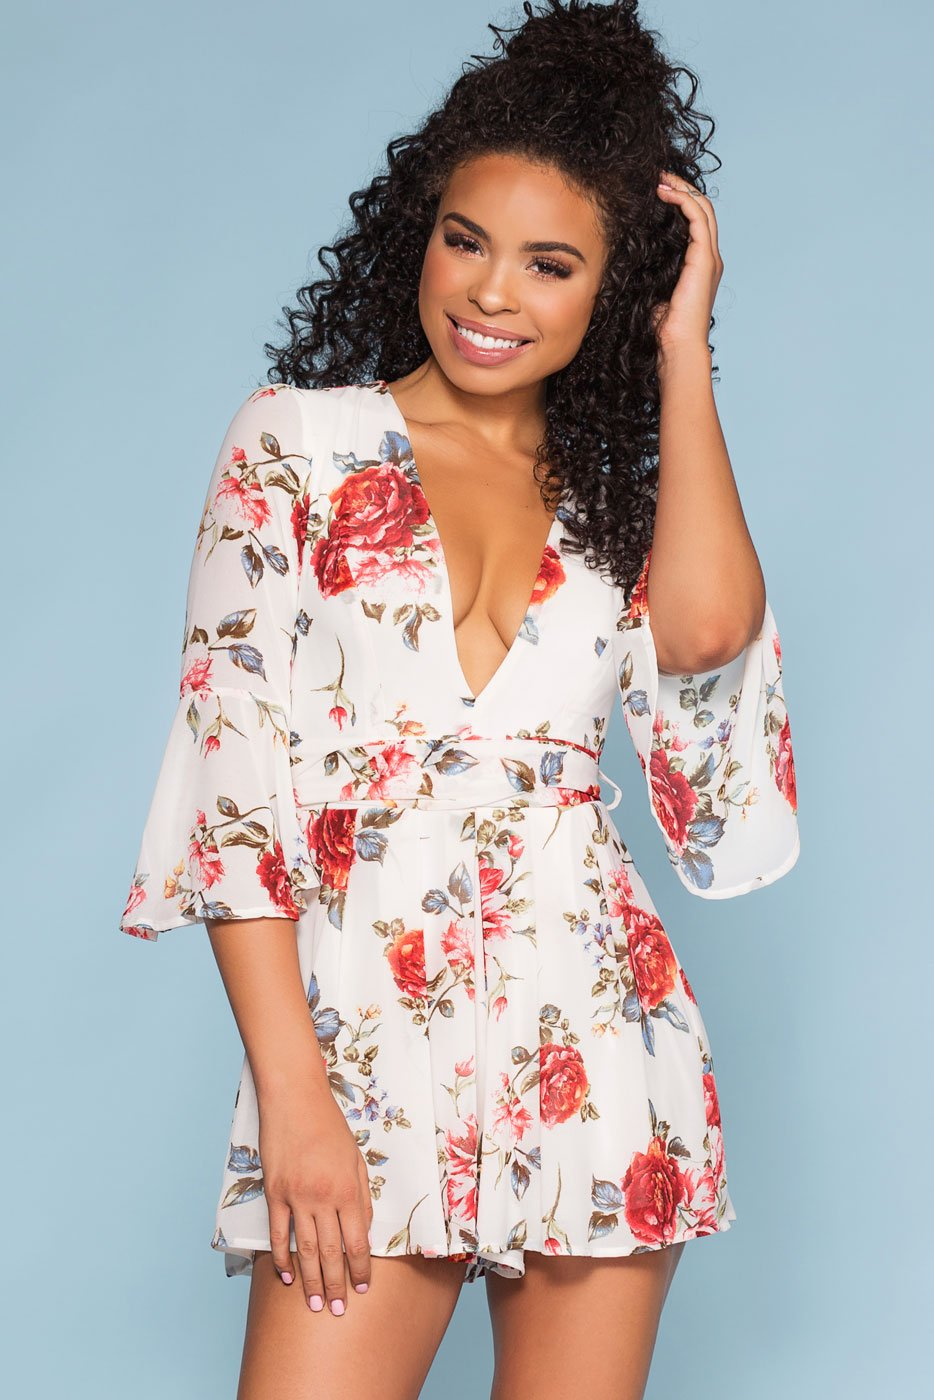 09e339e82520 Rompers - Lost Garden Floral Bell Sleeve Romper - Ivory ...